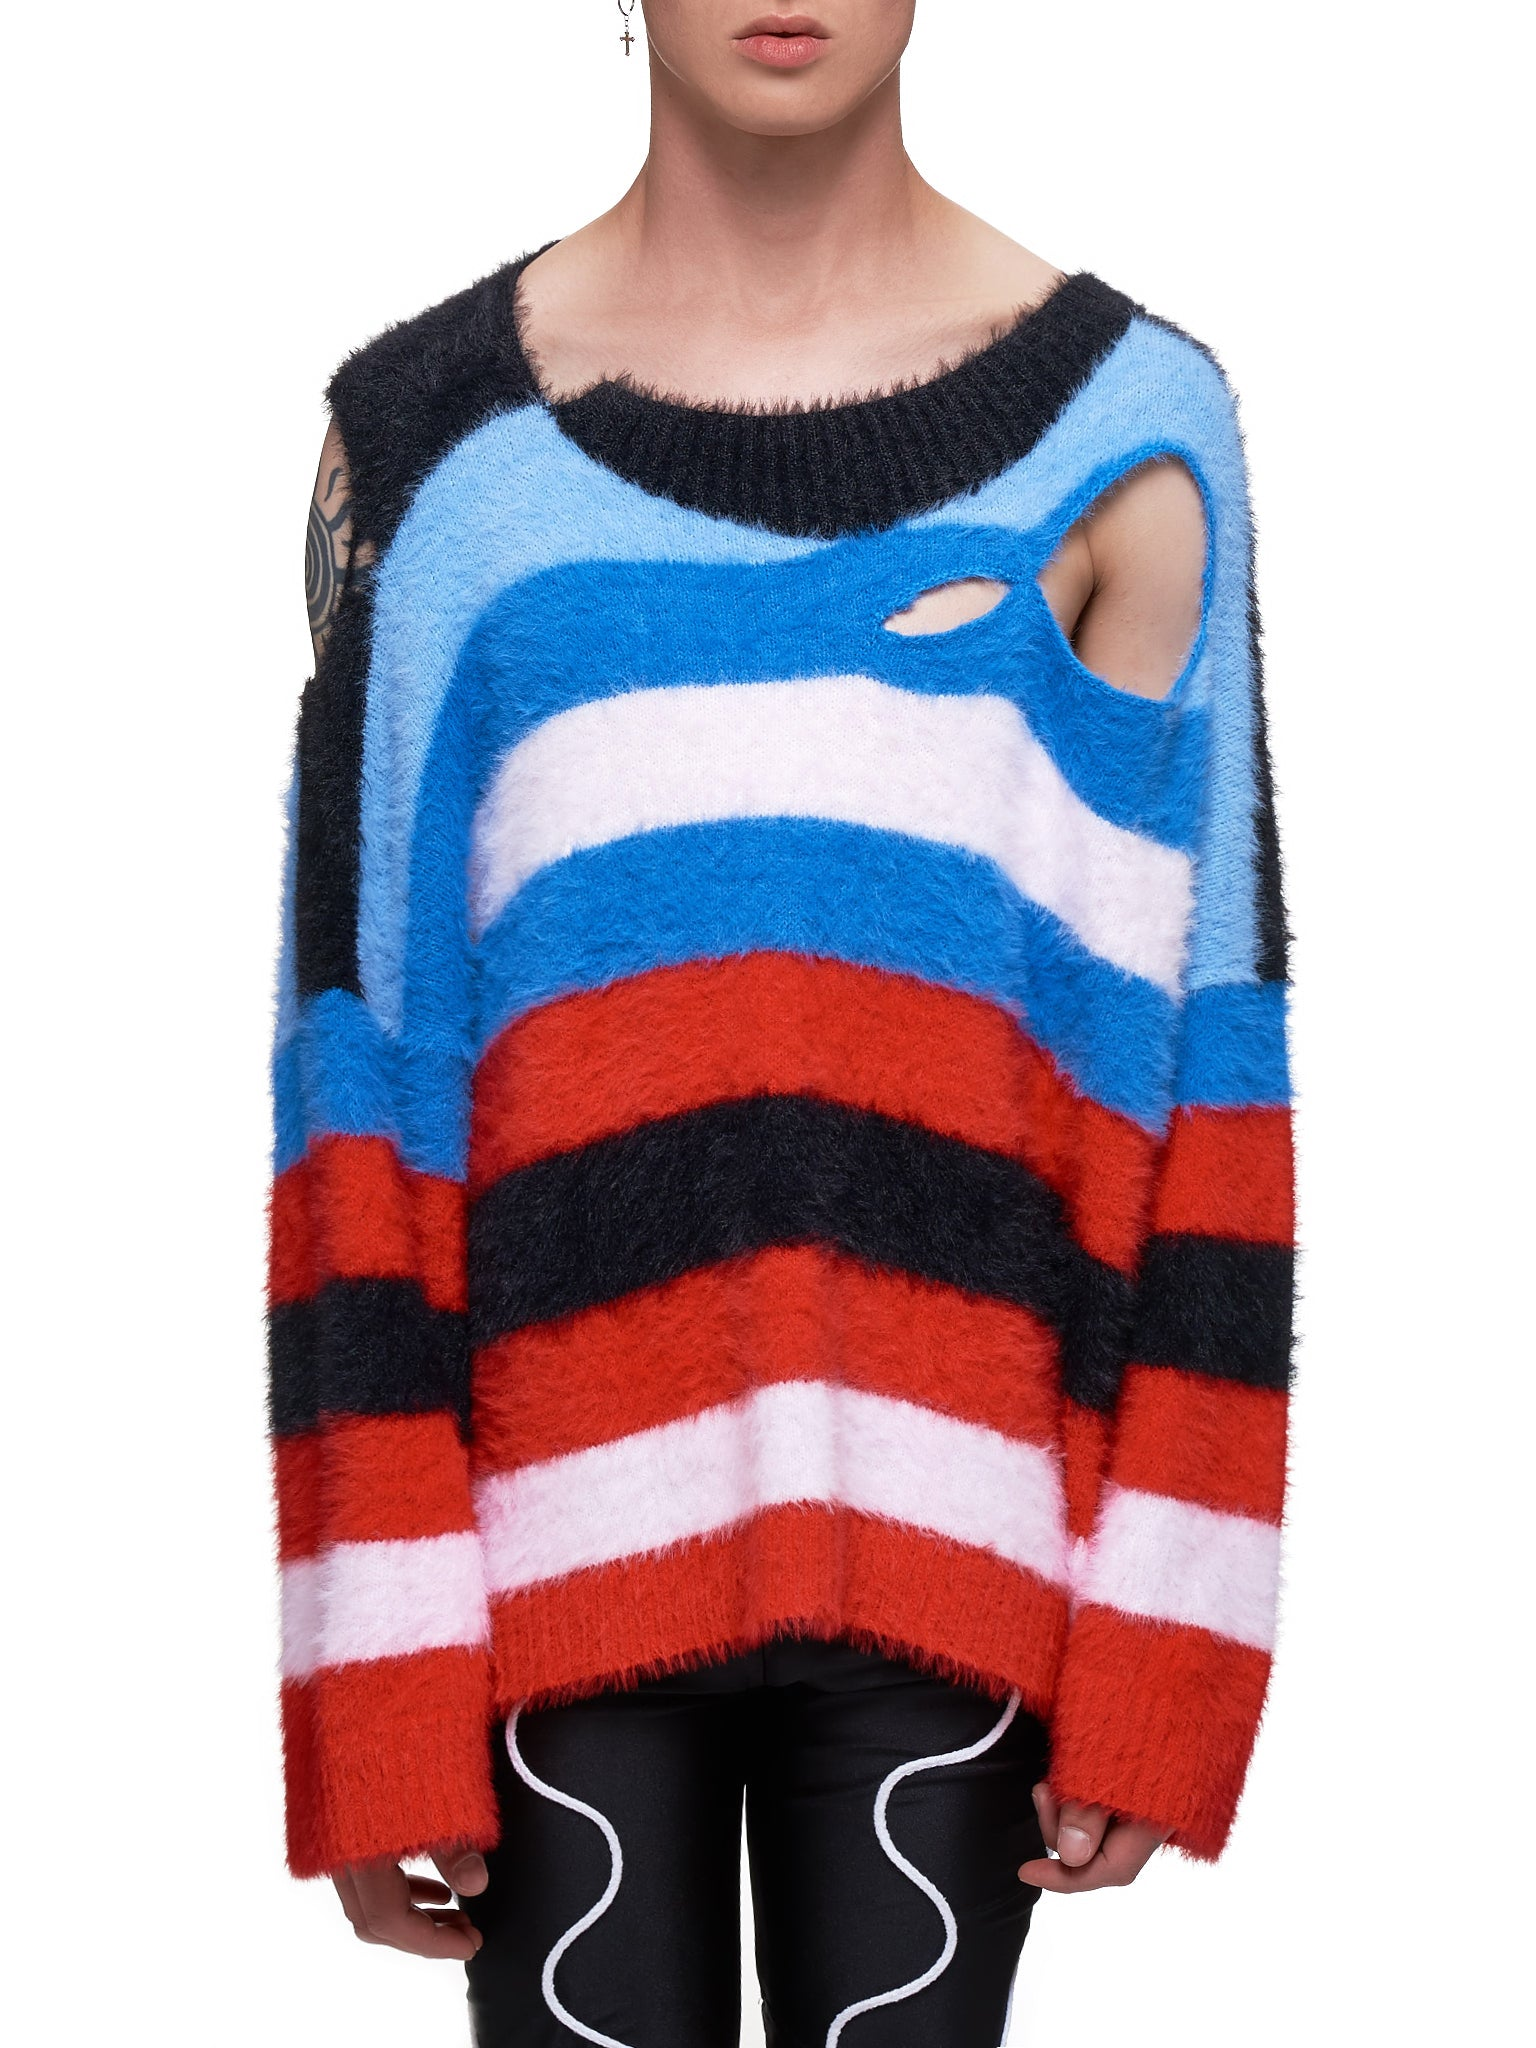 Charles Jeffrey Loverboy Sweater - Hlorenzo Front